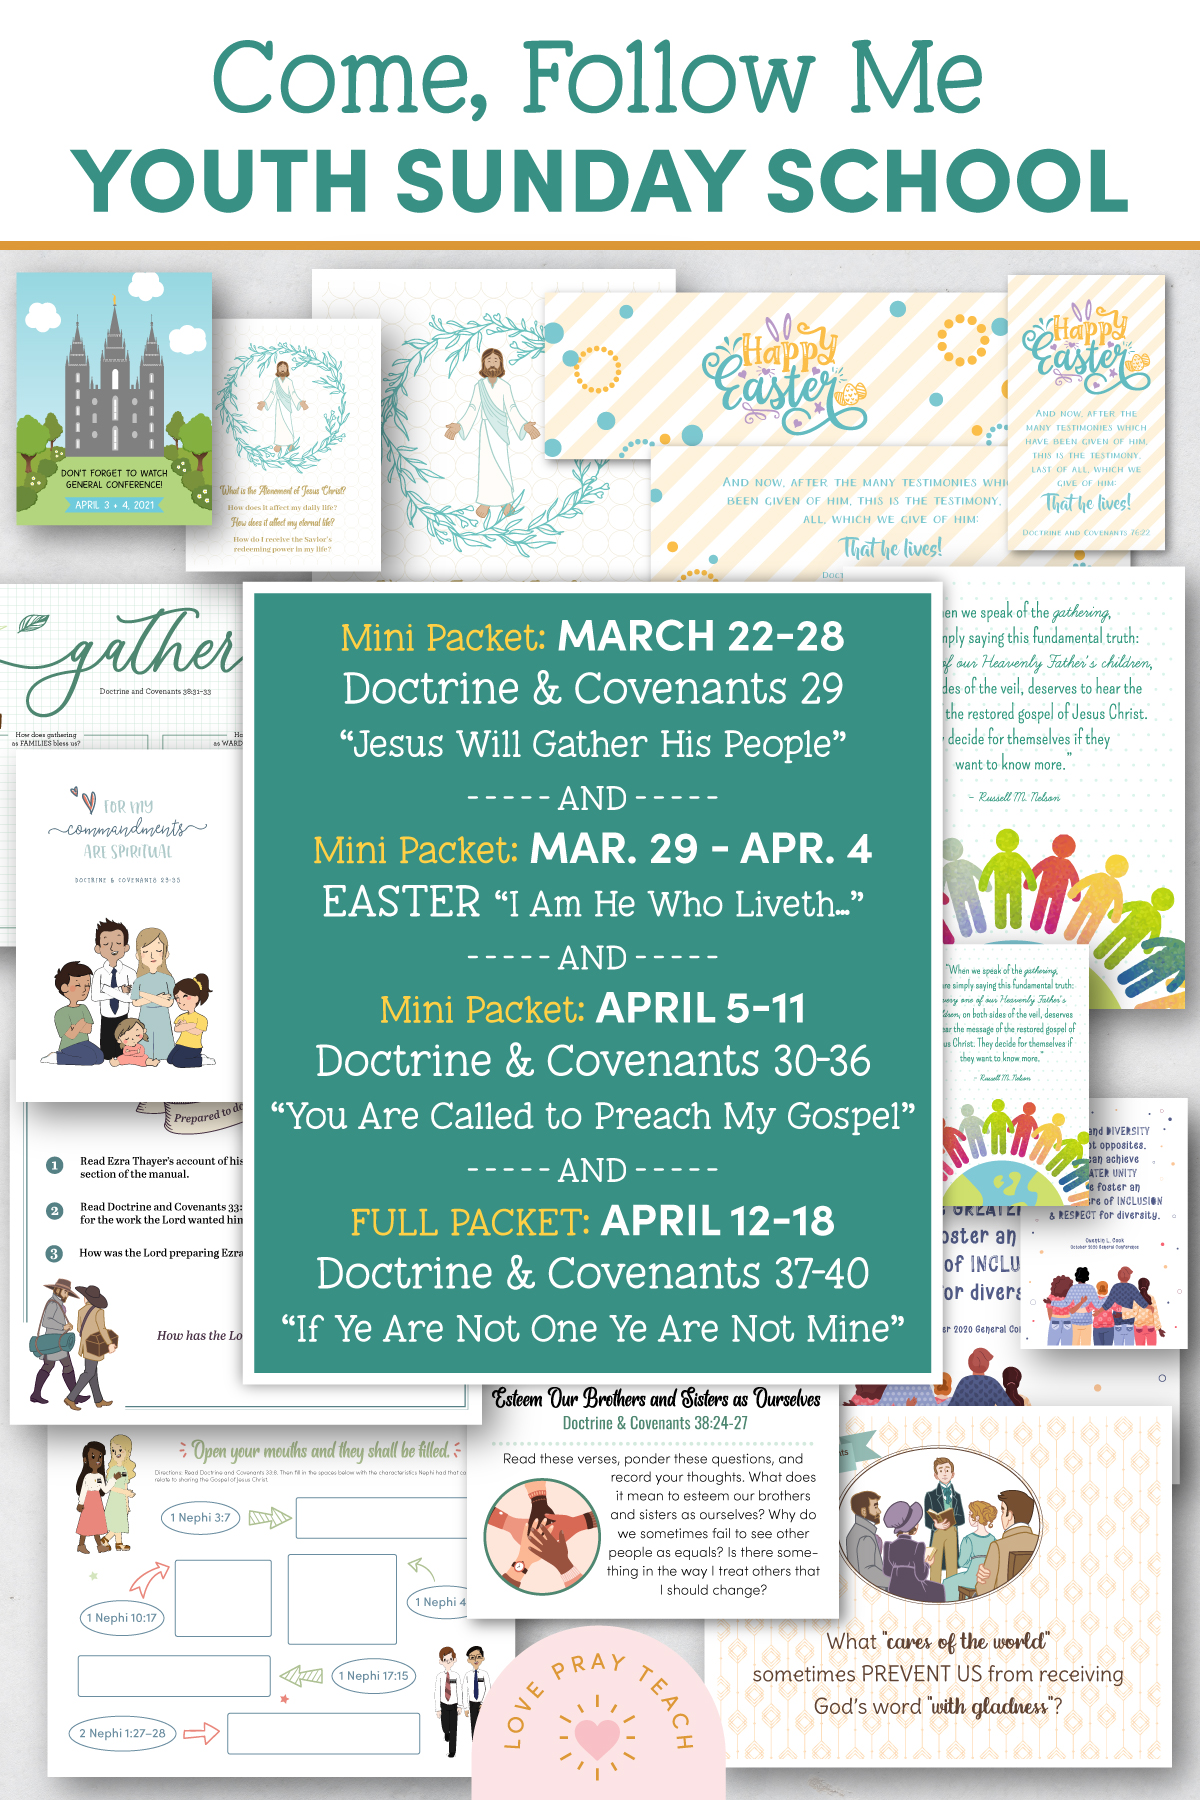 "Youth Sunday School Come, Follow Me Doctrine and Covenants 2021 March 22–28, March 29–April 4 EASTER, April 5–11, and April 12–18 Doctrine and Covenants 37–40 ""If Ye Are Not One Ye Are Not Mine"" Printable Lesson Pack"